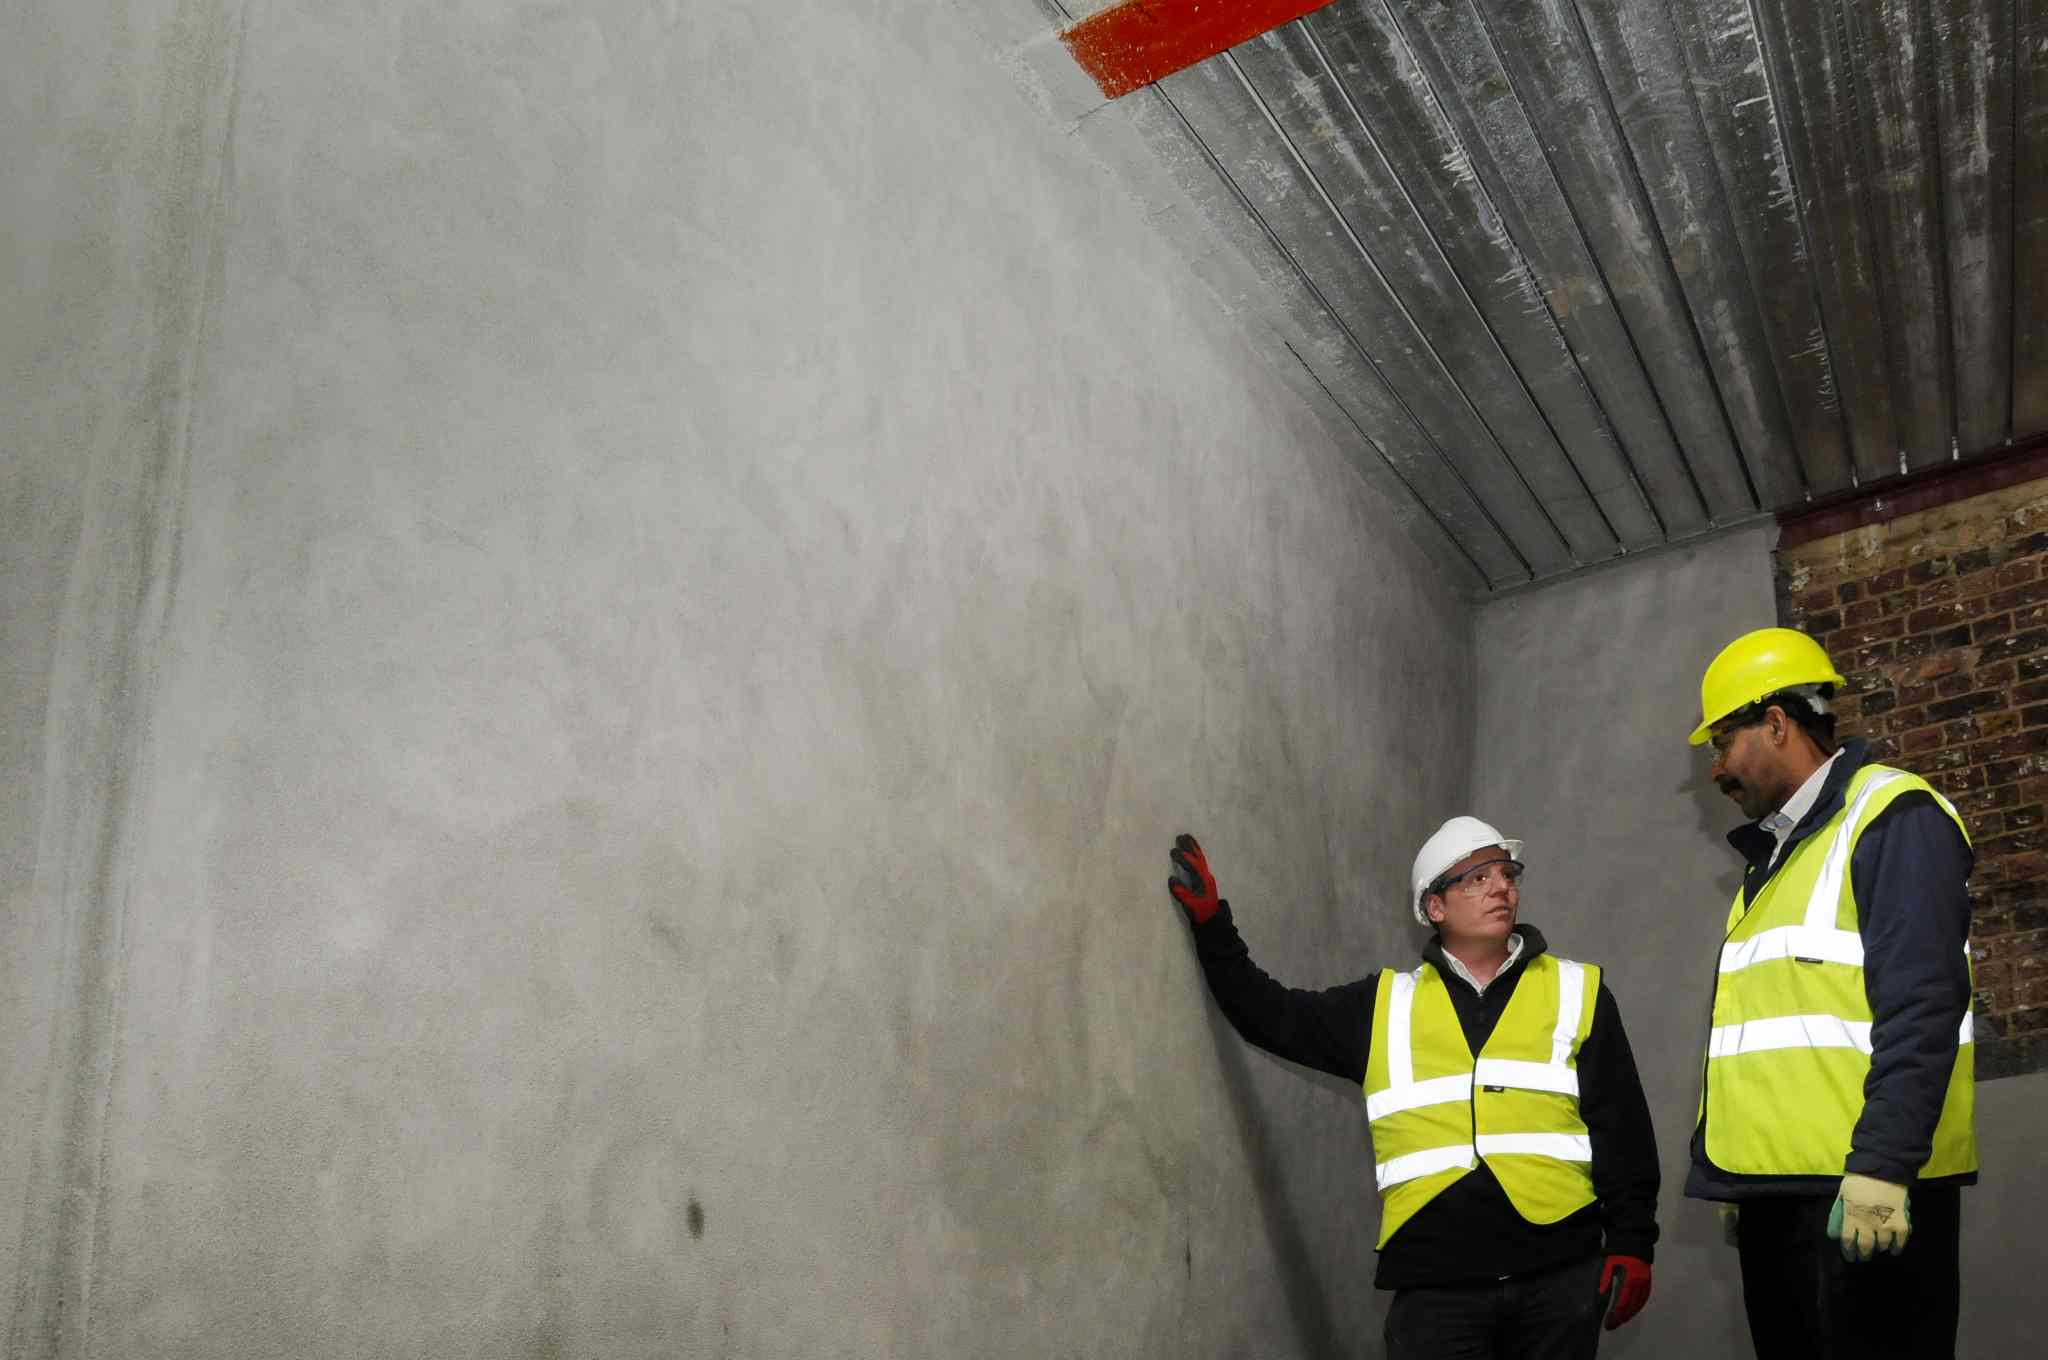 NEW BUILDINGS OR OLD, SIKA HAS THE WATERPROOF SOLUTION